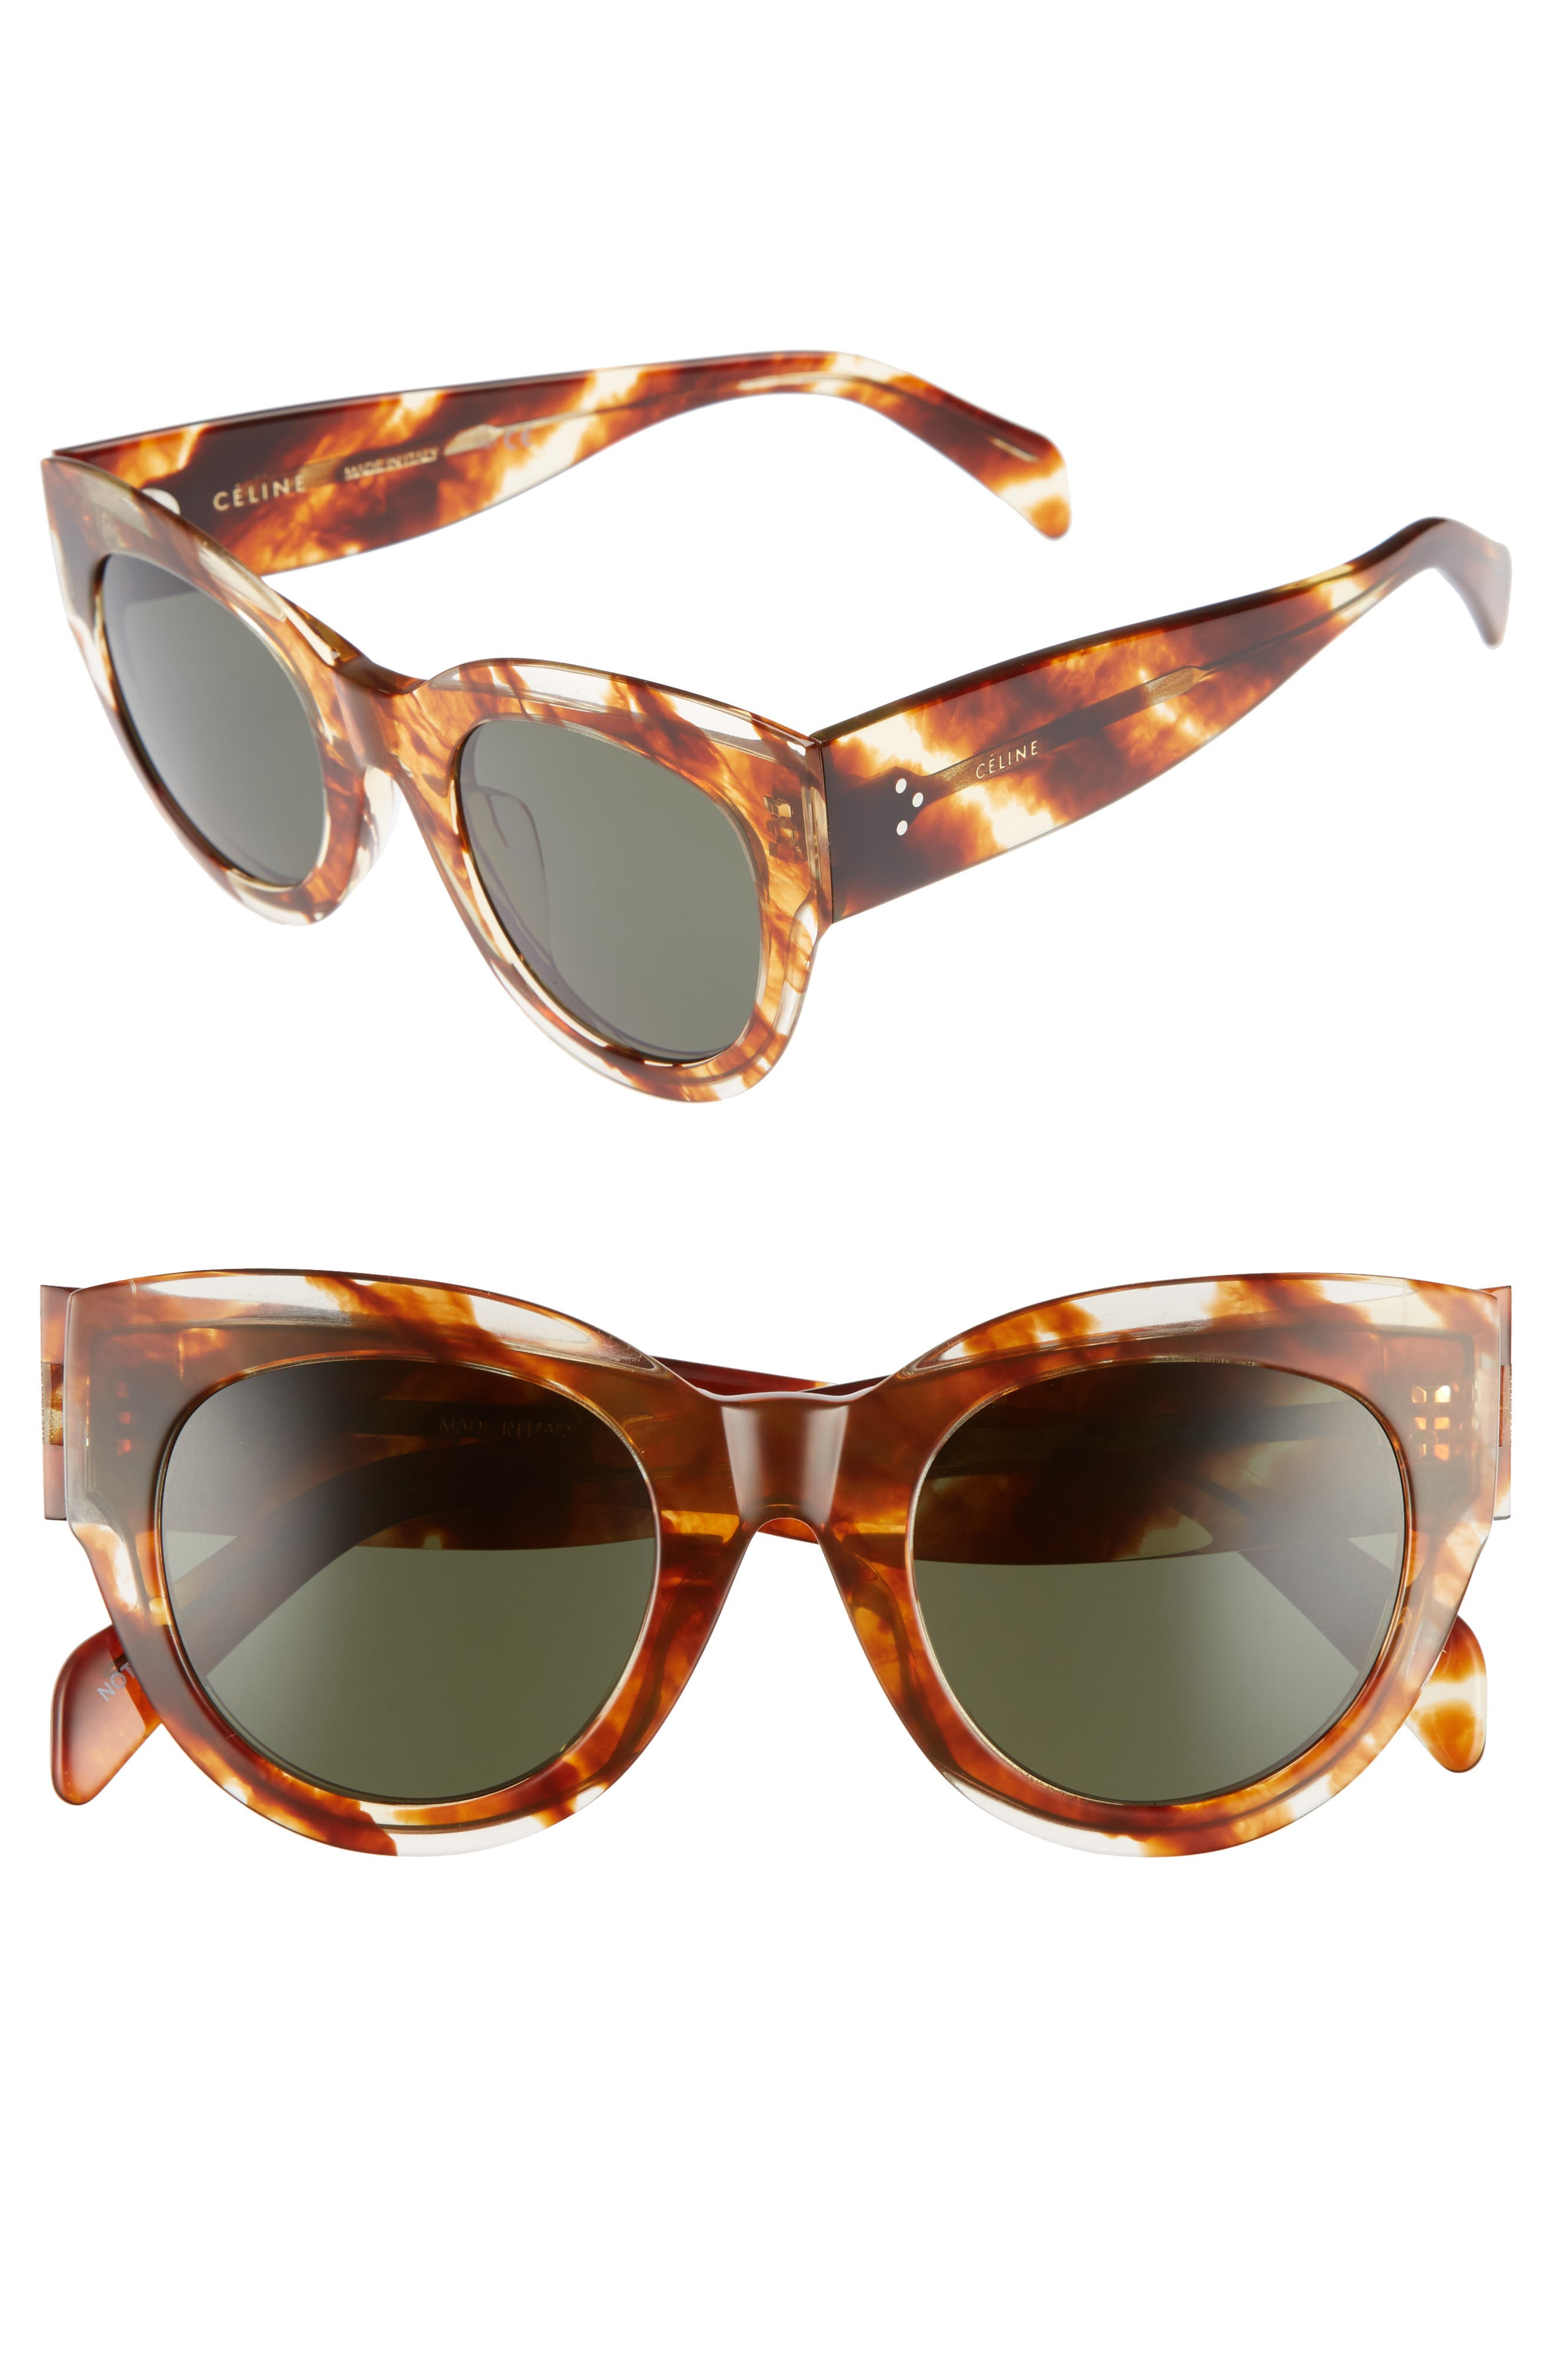 Special Fit 50mm Cat Eye Sunglasses,                             Main thumbnail 1, color,                             STRIPED COGNAC HAVANA/ GREEN